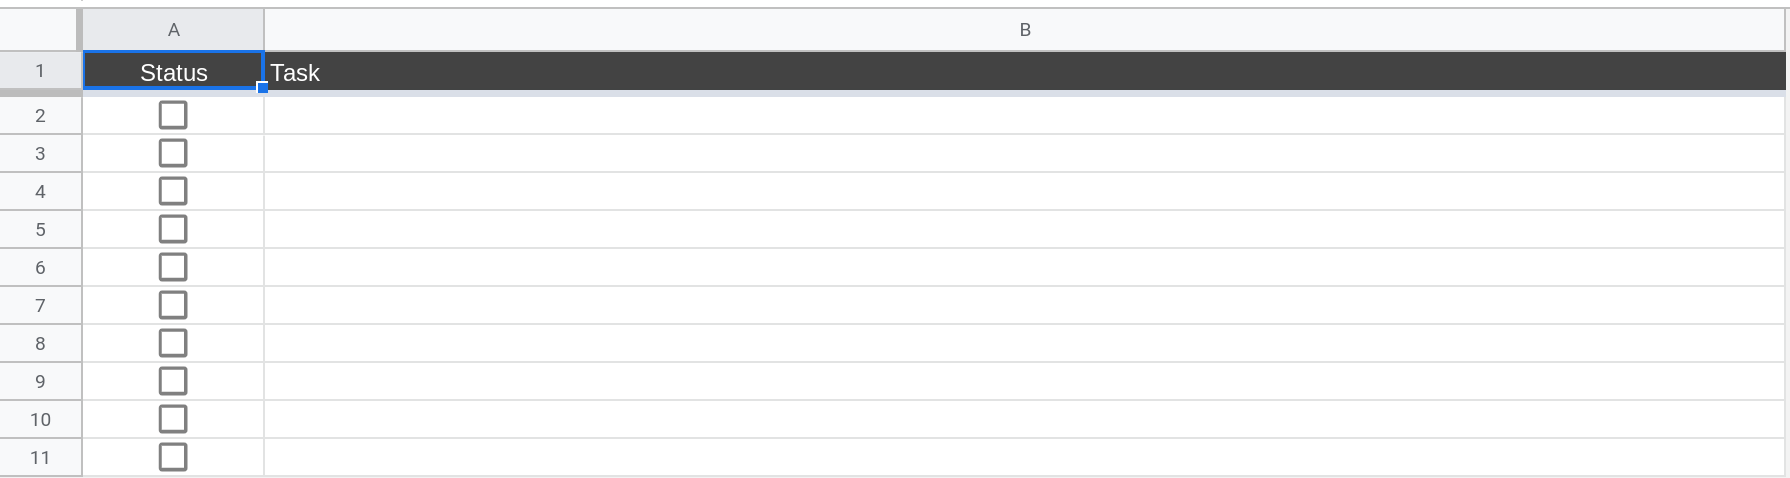 A screenshot of Google Sheets where the spreadsheet has 2 columns: Status and Task. The status column contains checkboxes.